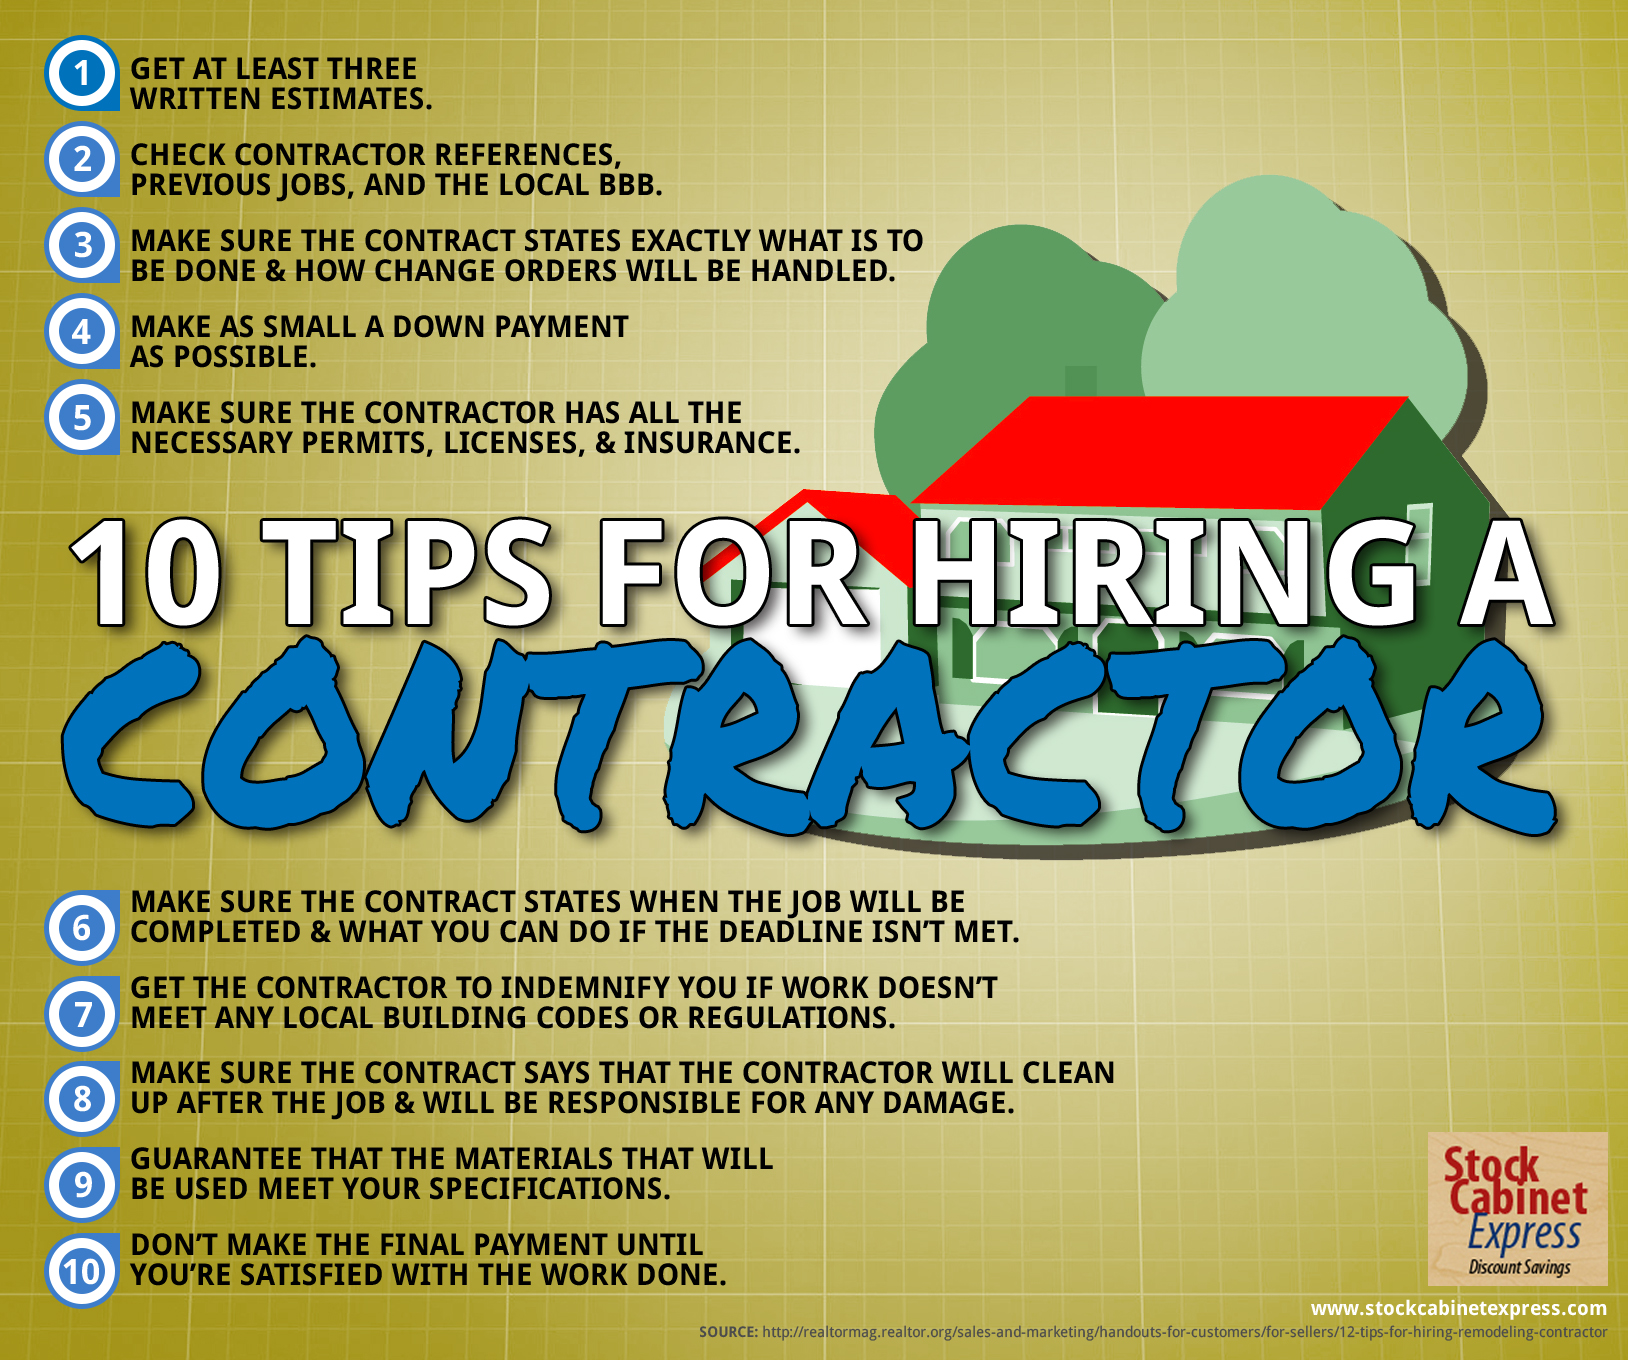 infographic 10 tips for hiring a contractor